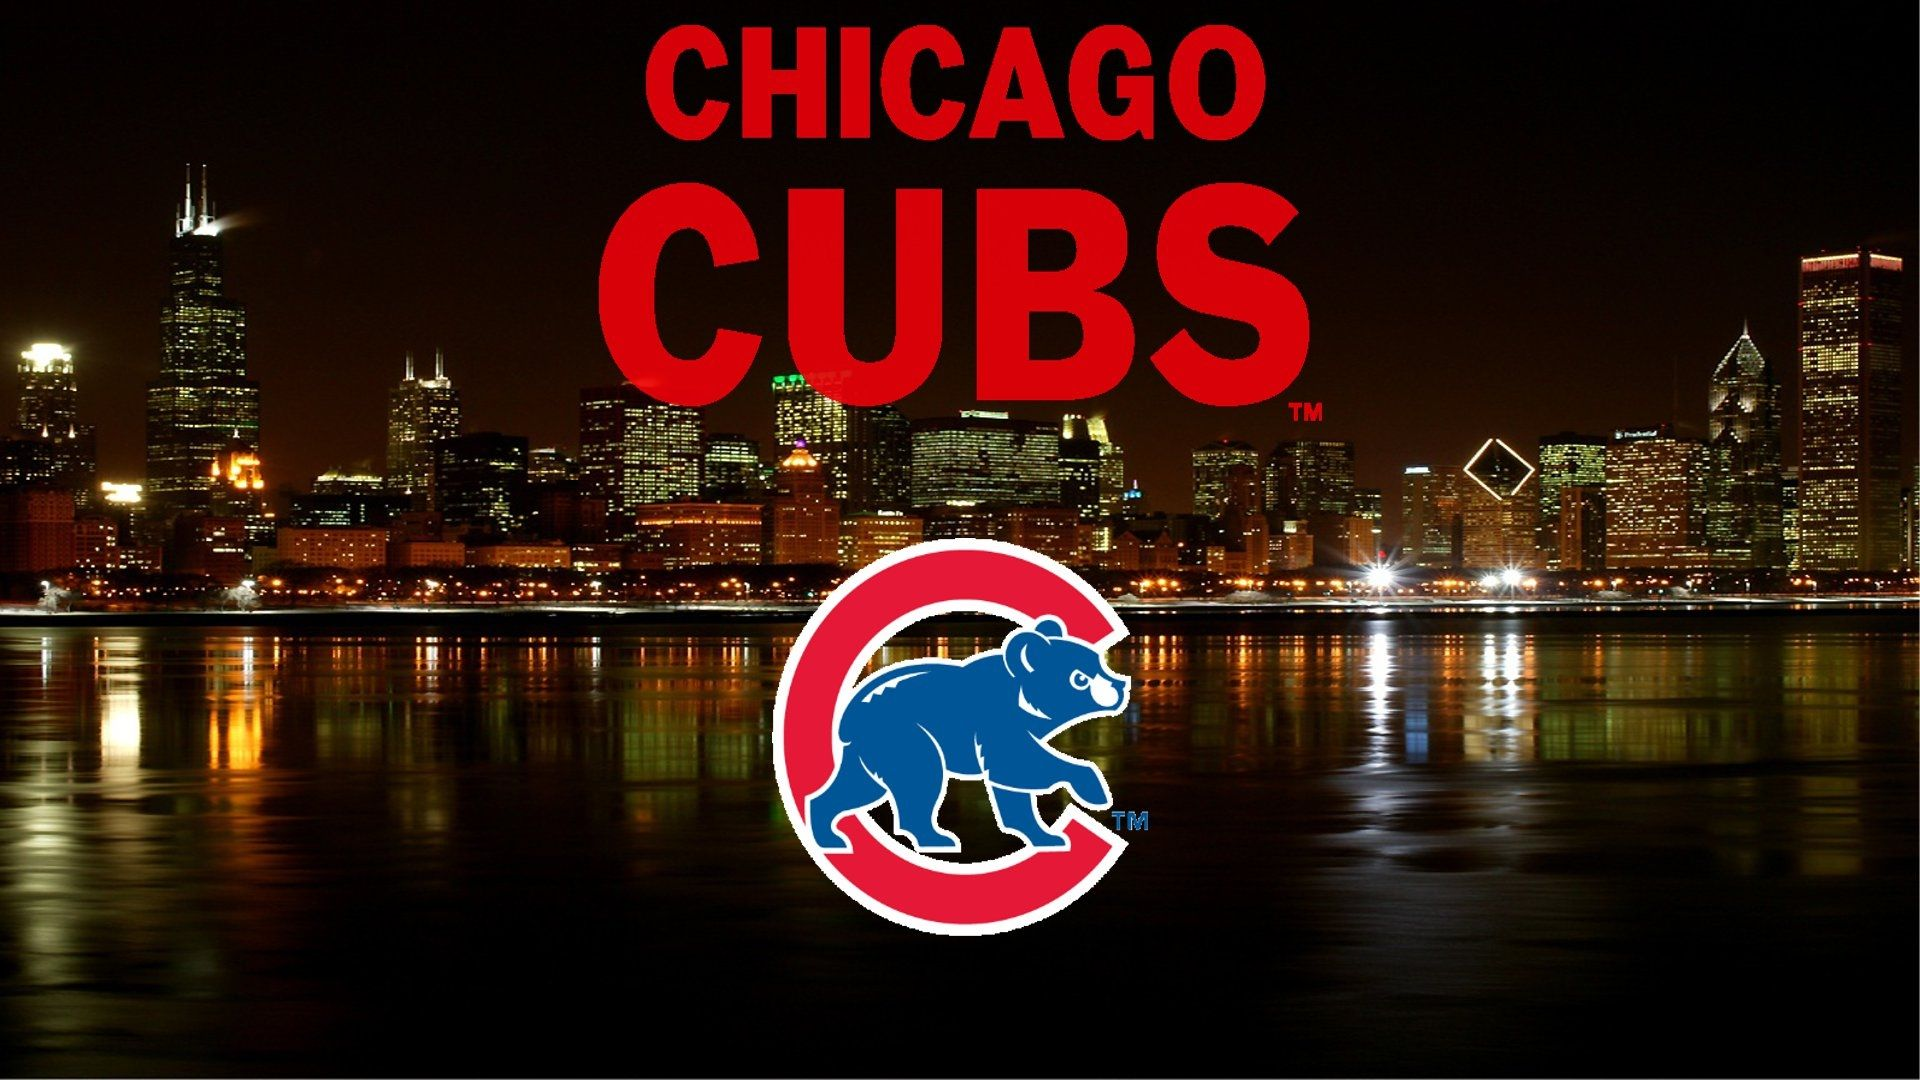 Hey Normal What Do You Say Chicago Cubs Wallpaper Cubs Wallpaper Mlb Chicago Cubs